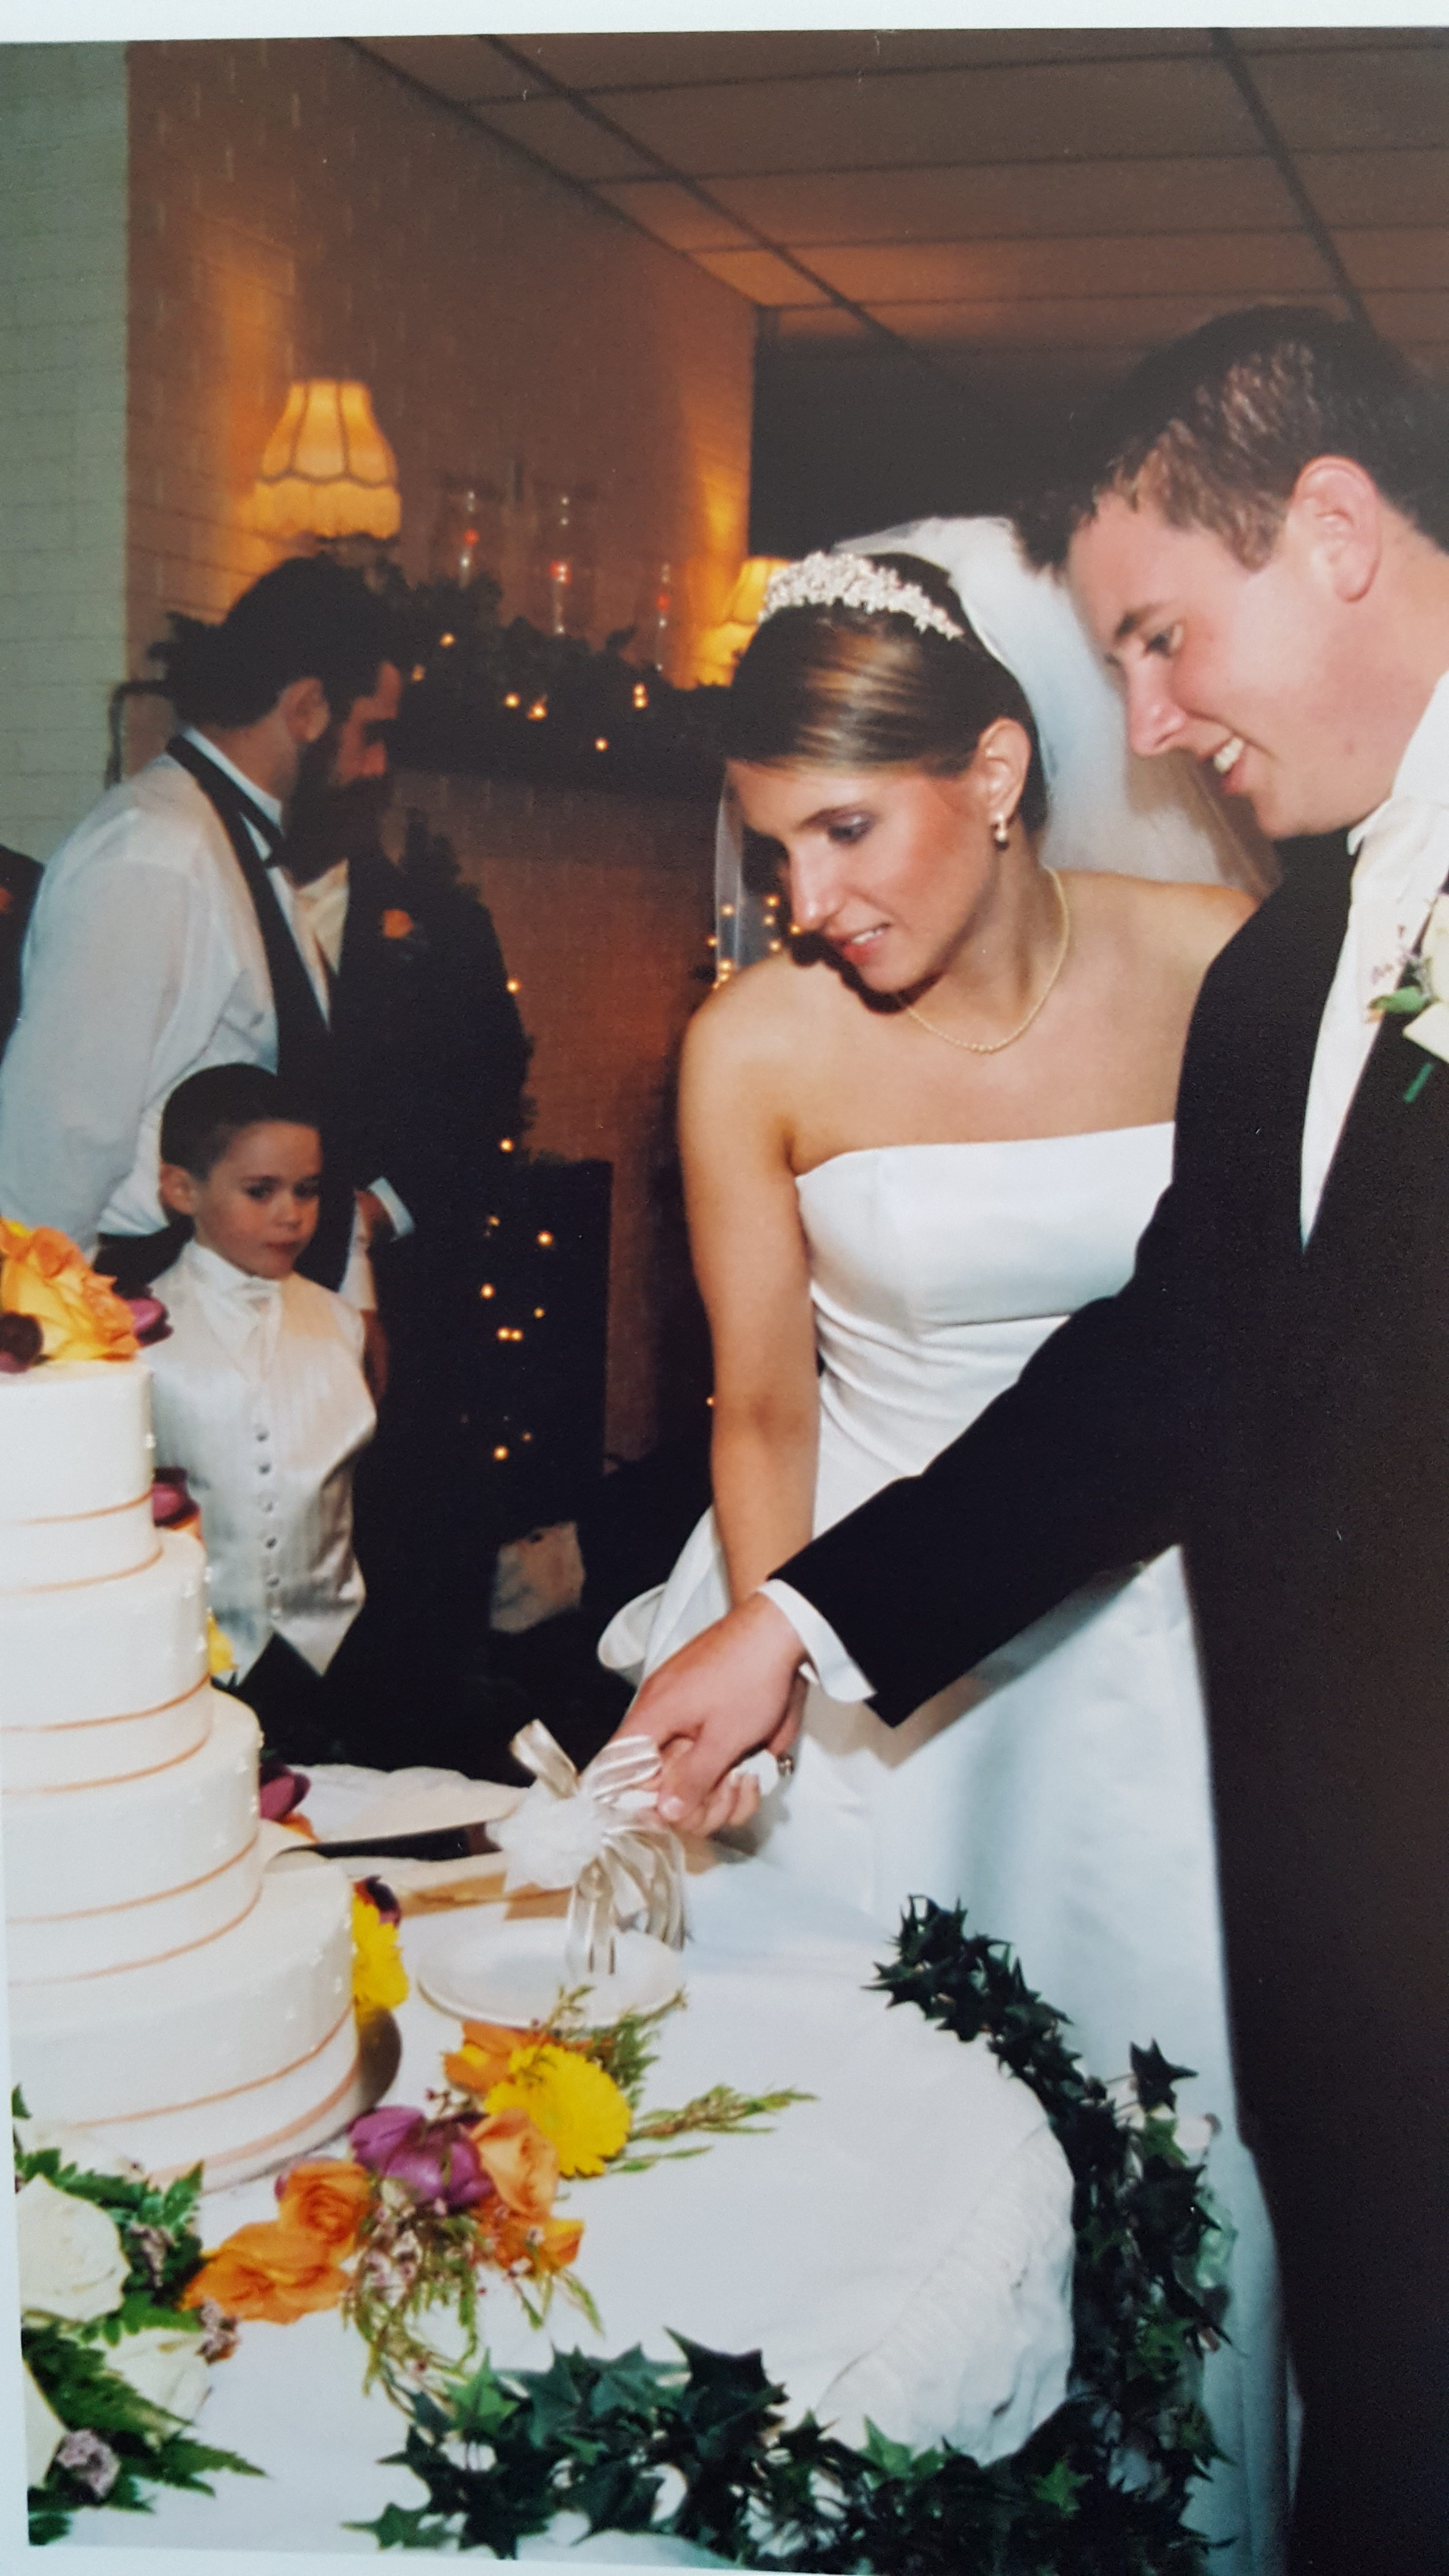 Wedding Cakes of the Past and (Imaginary) Future